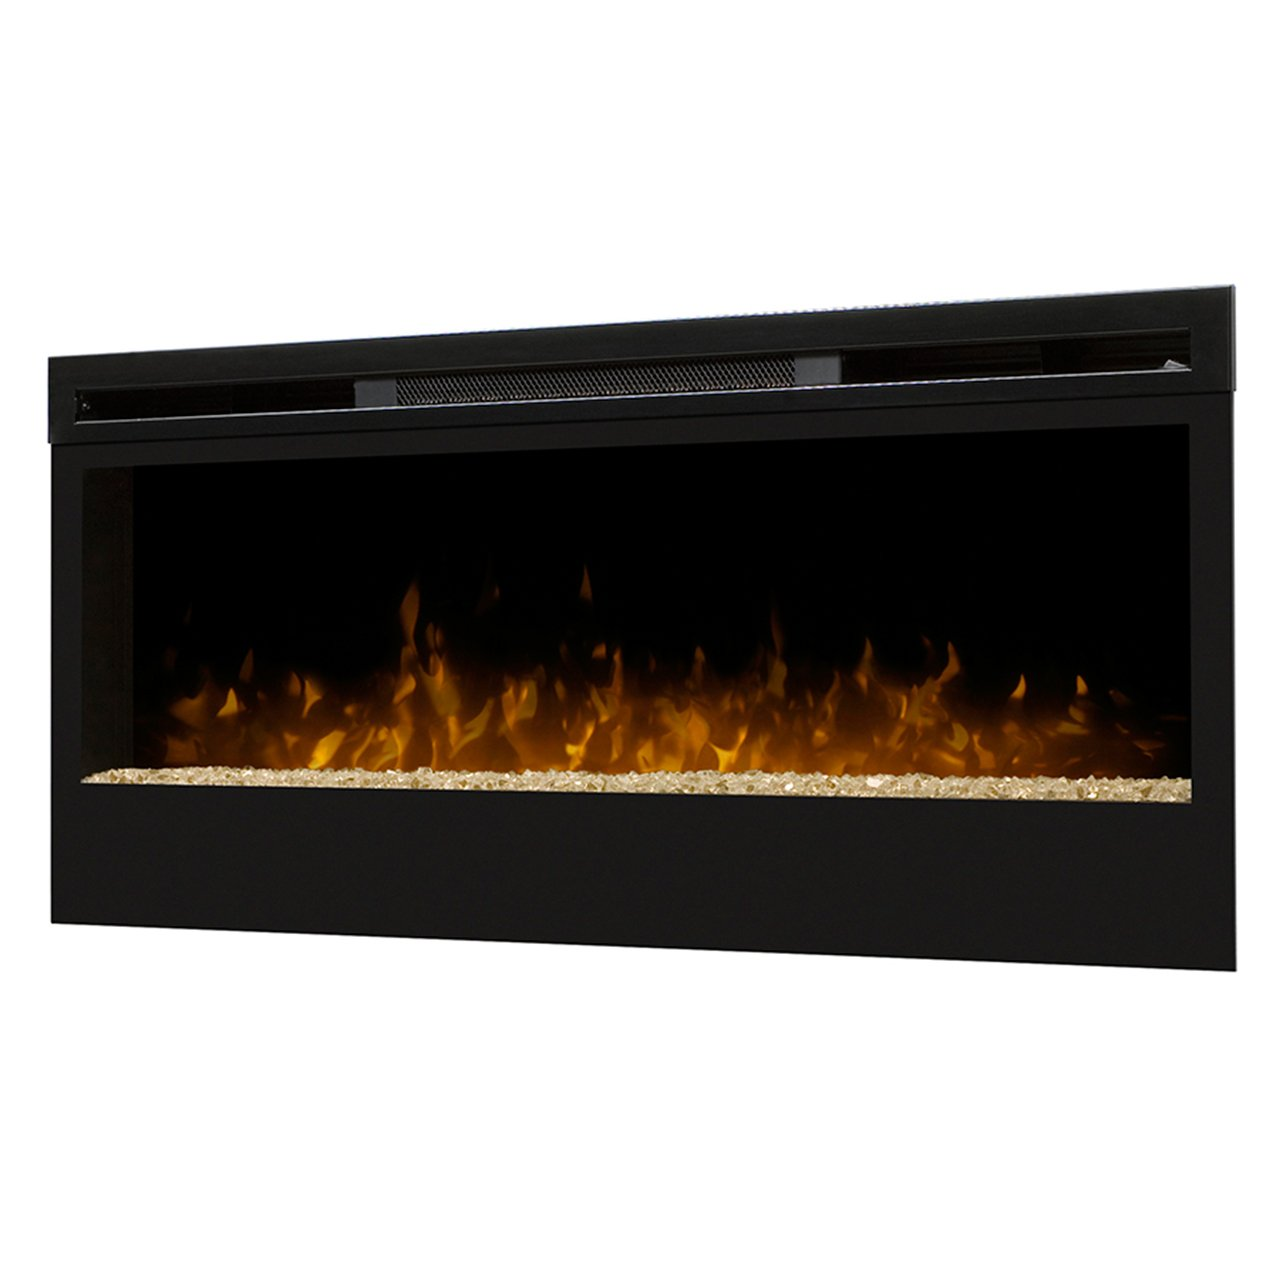 Dimplex BLF50 50-Inch Synergy Linear Wall Mount Electric Fireplace